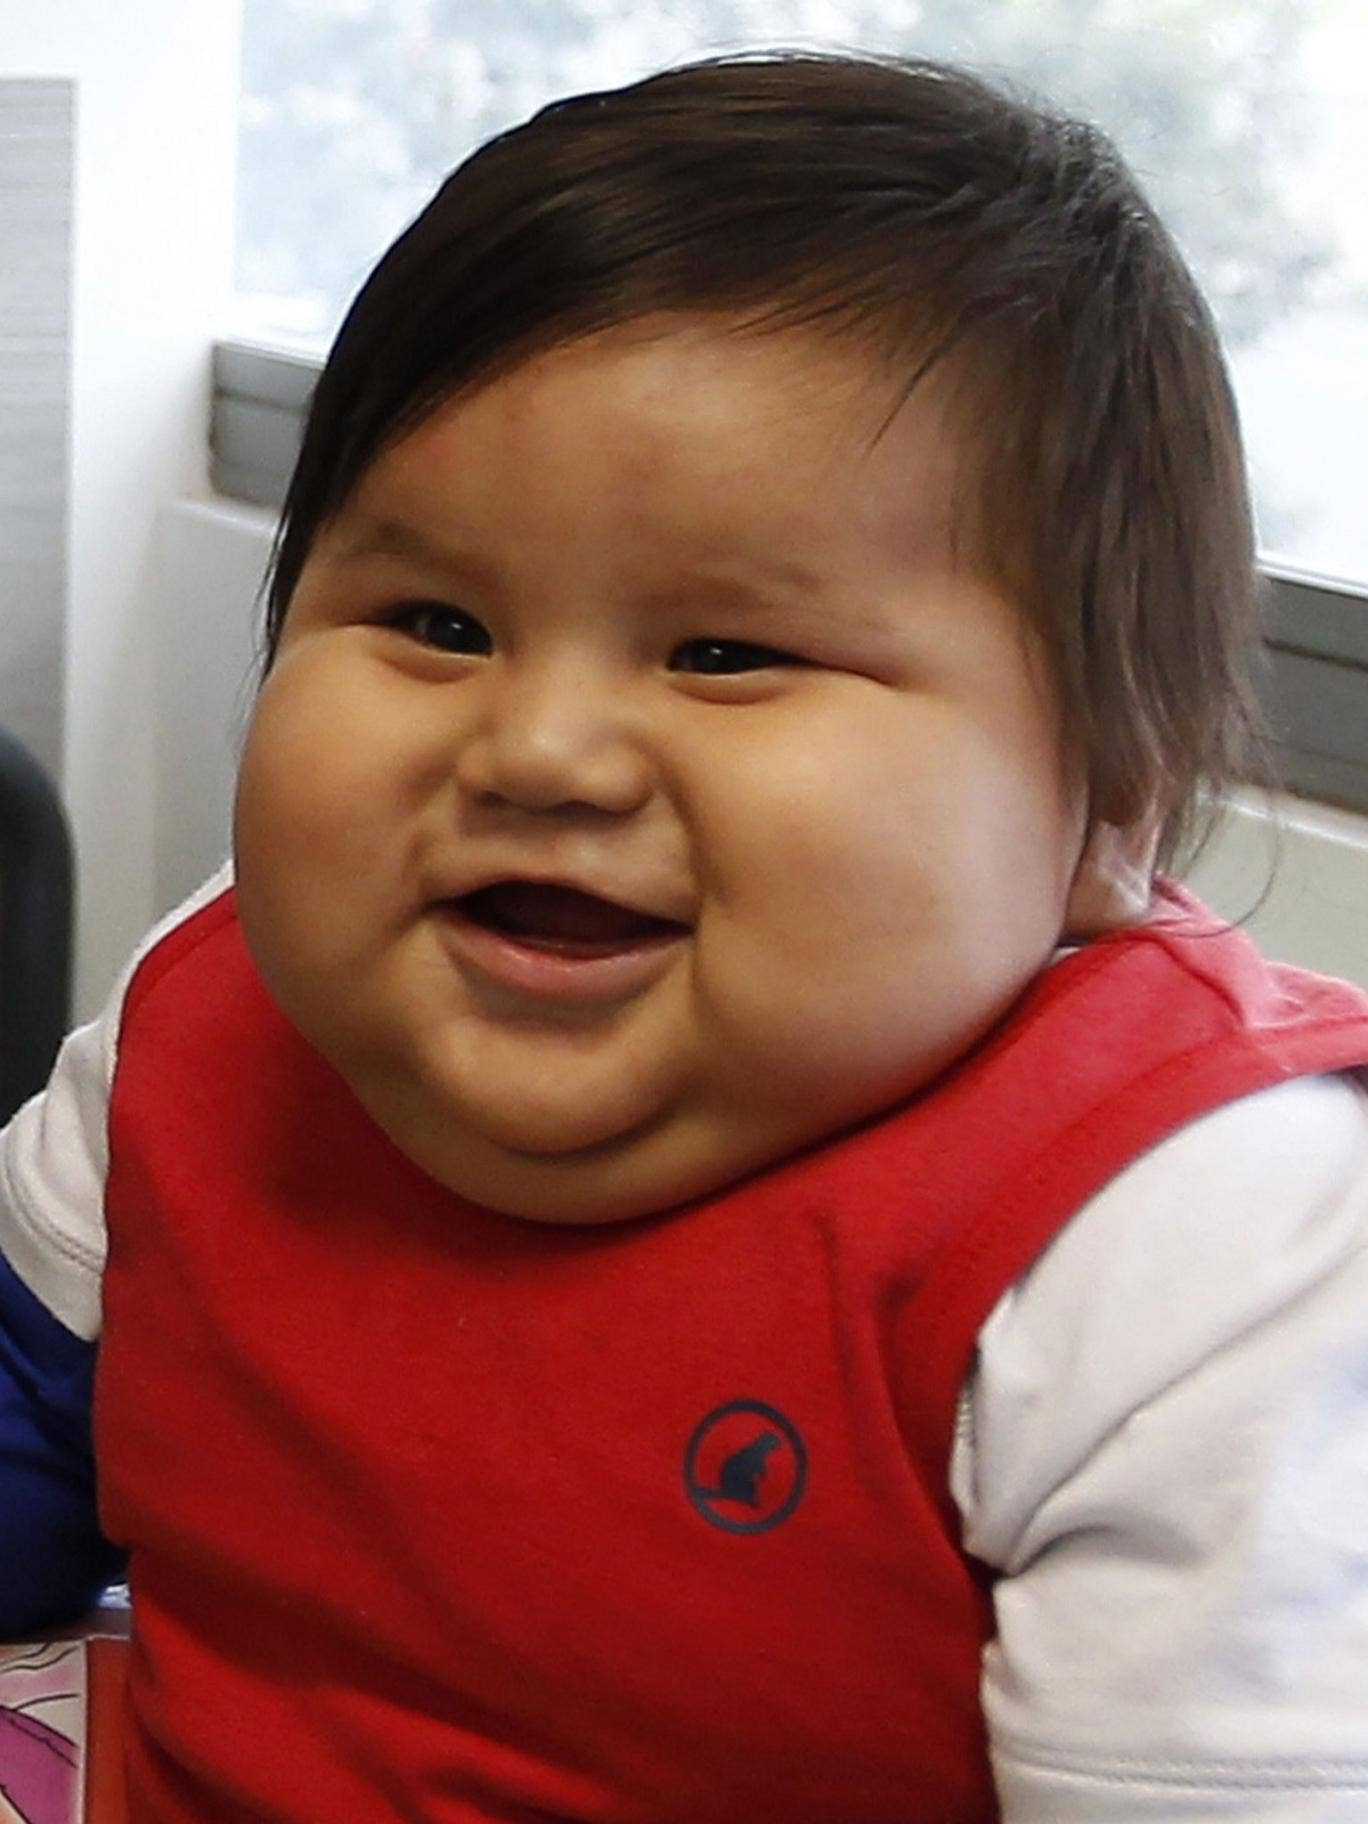 Santiago weighs more than 20 kilos and will be on a diet to lose weight, said therapist Salvador Palacios of a nonprofit organization that cares for obese children